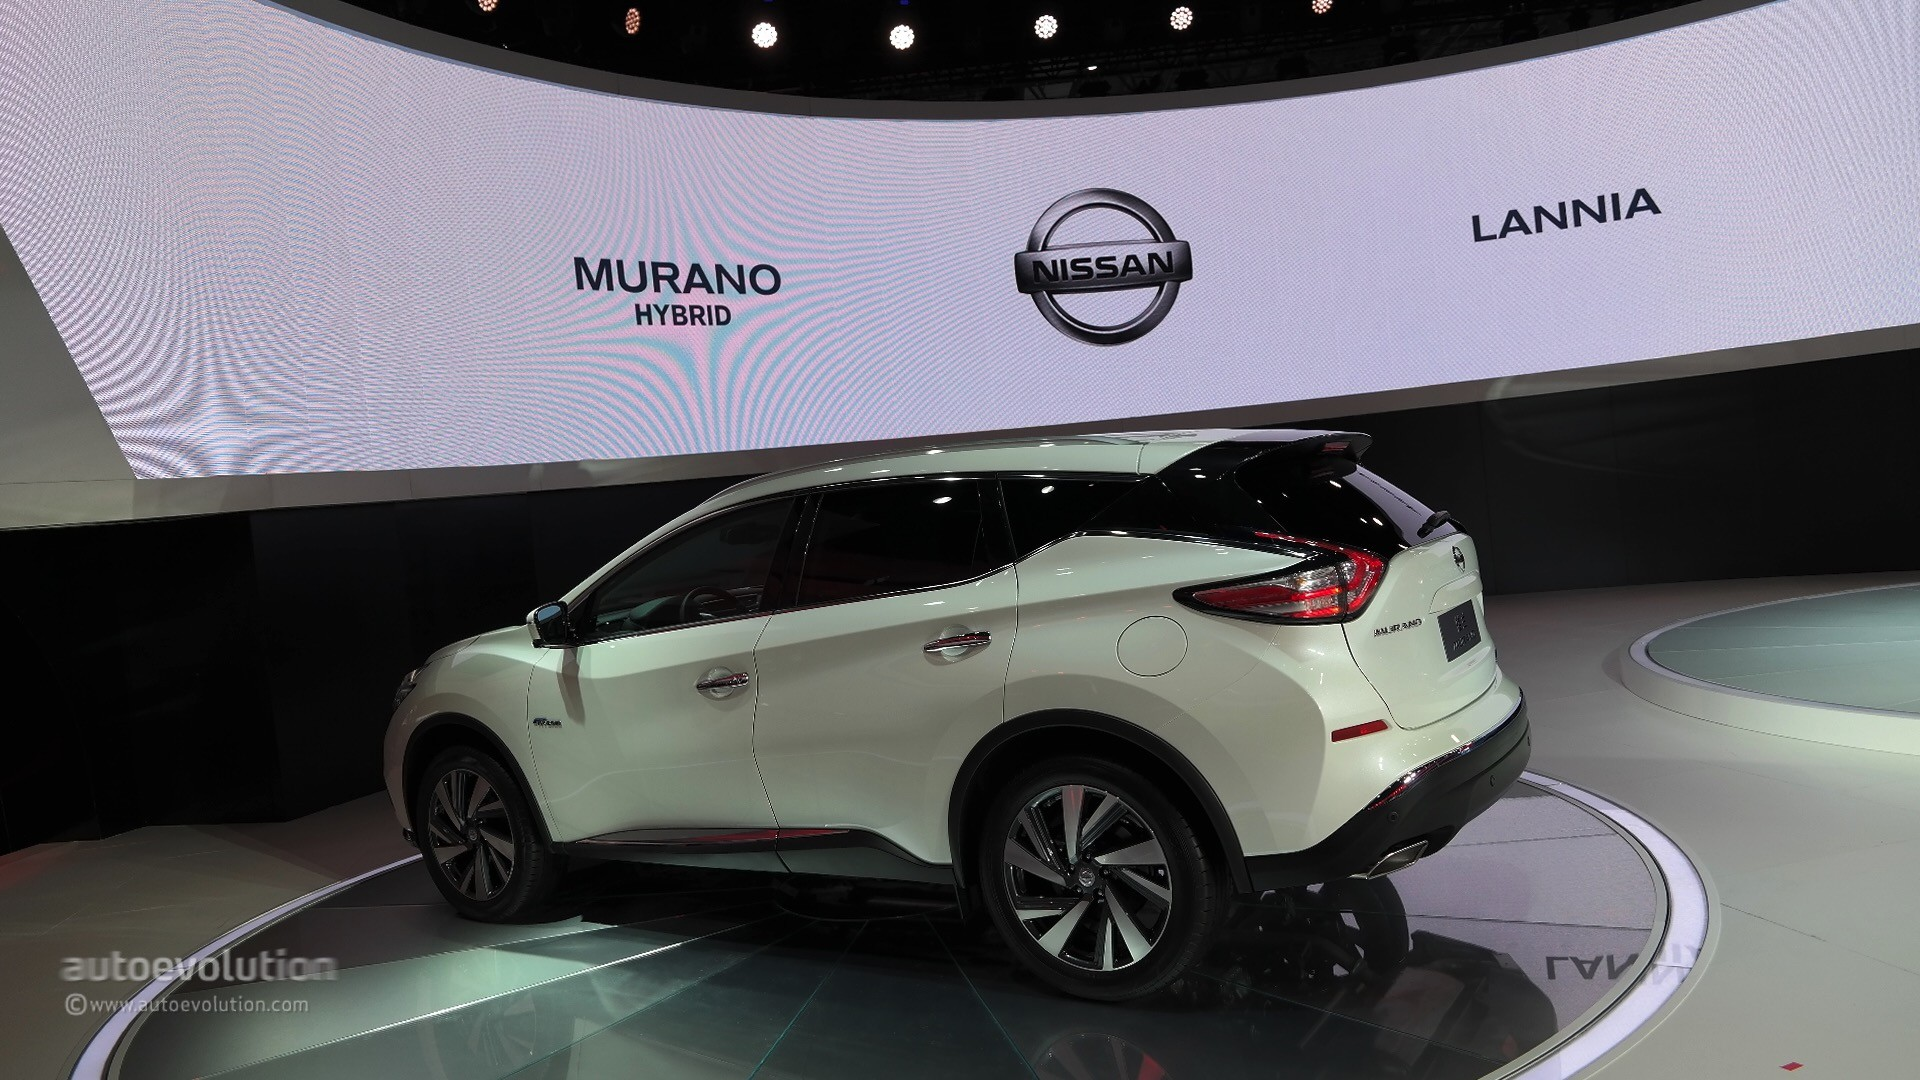 world premiere for 2016 nissan murano hybrid at auto shanghai 2015 autoevolution. Black Bedroom Furniture Sets. Home Design Ideas